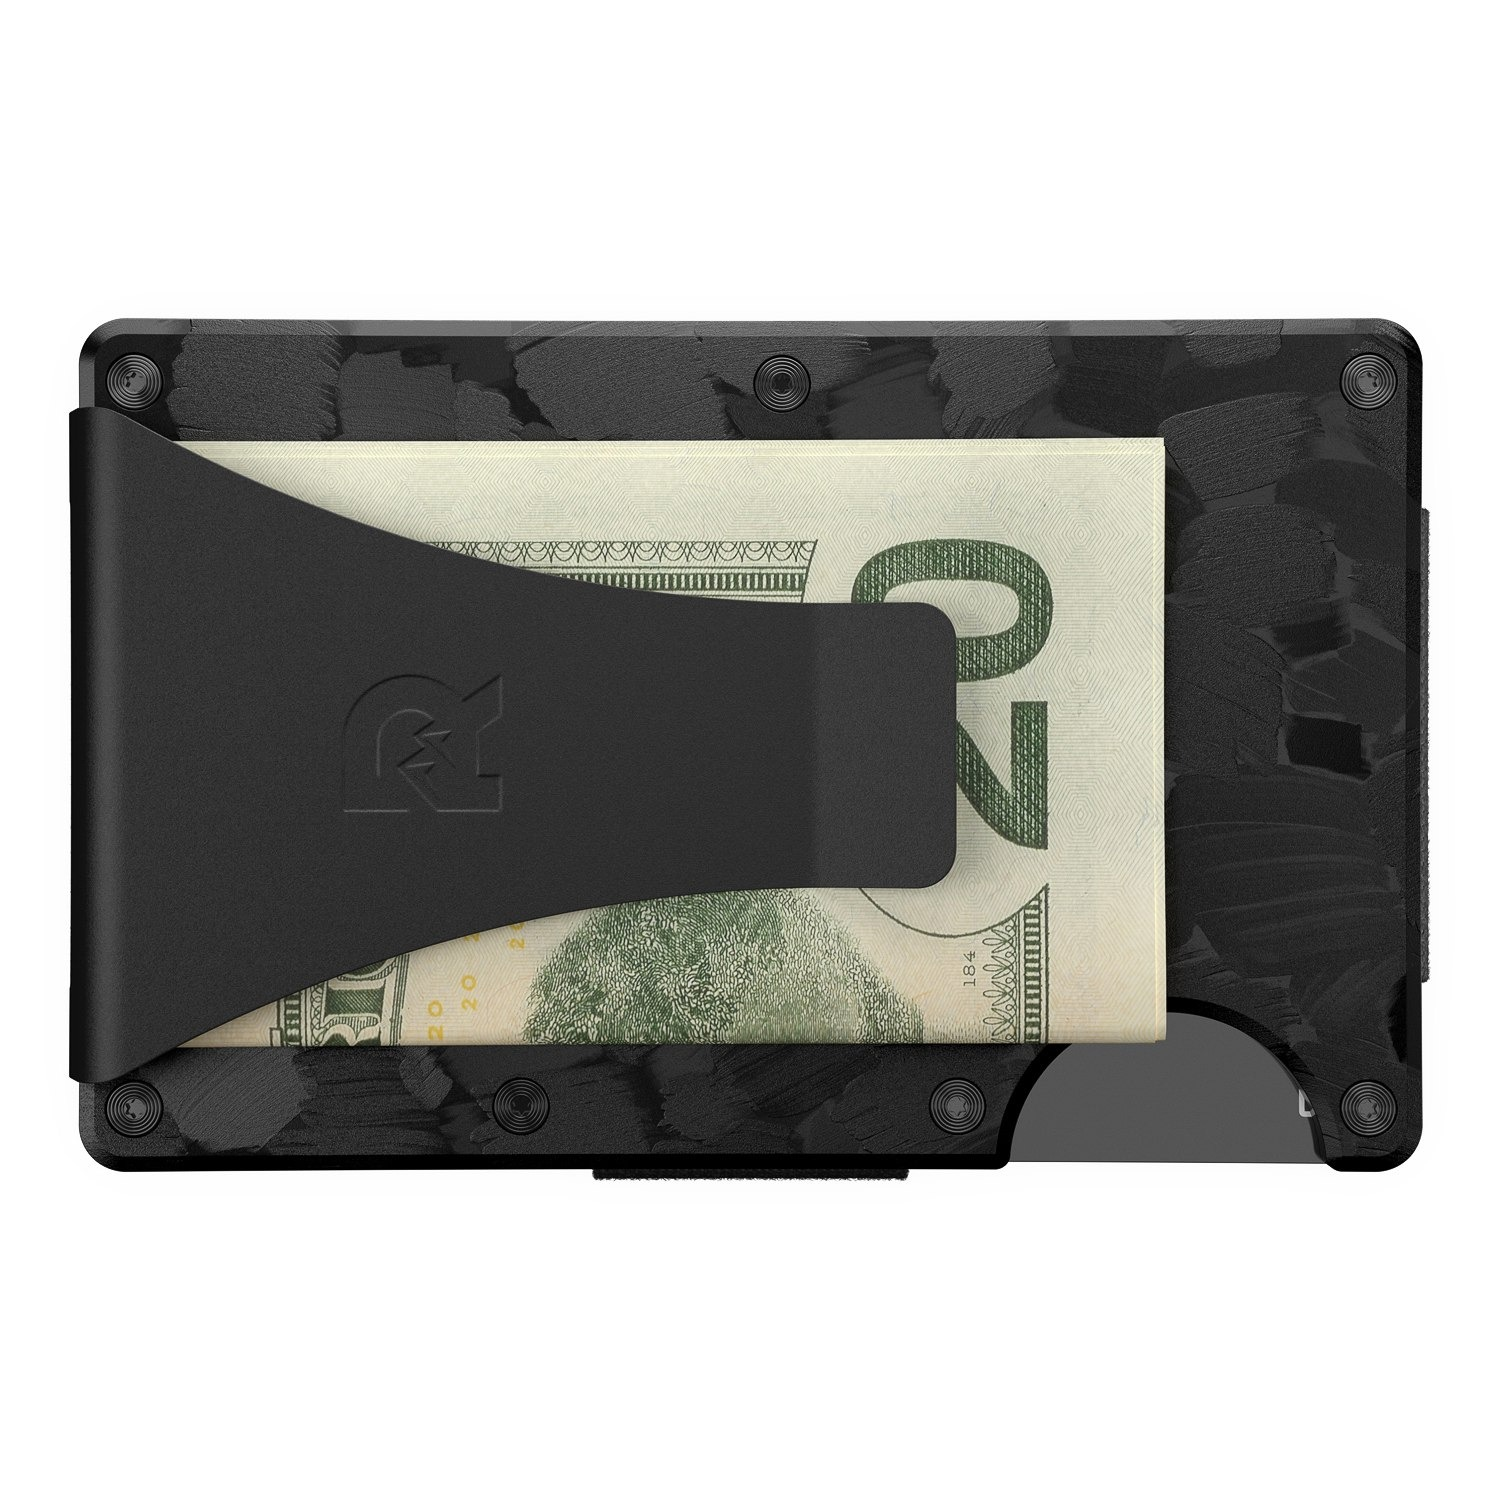 The Ridge Forged Carbon Wallet + Money Clip